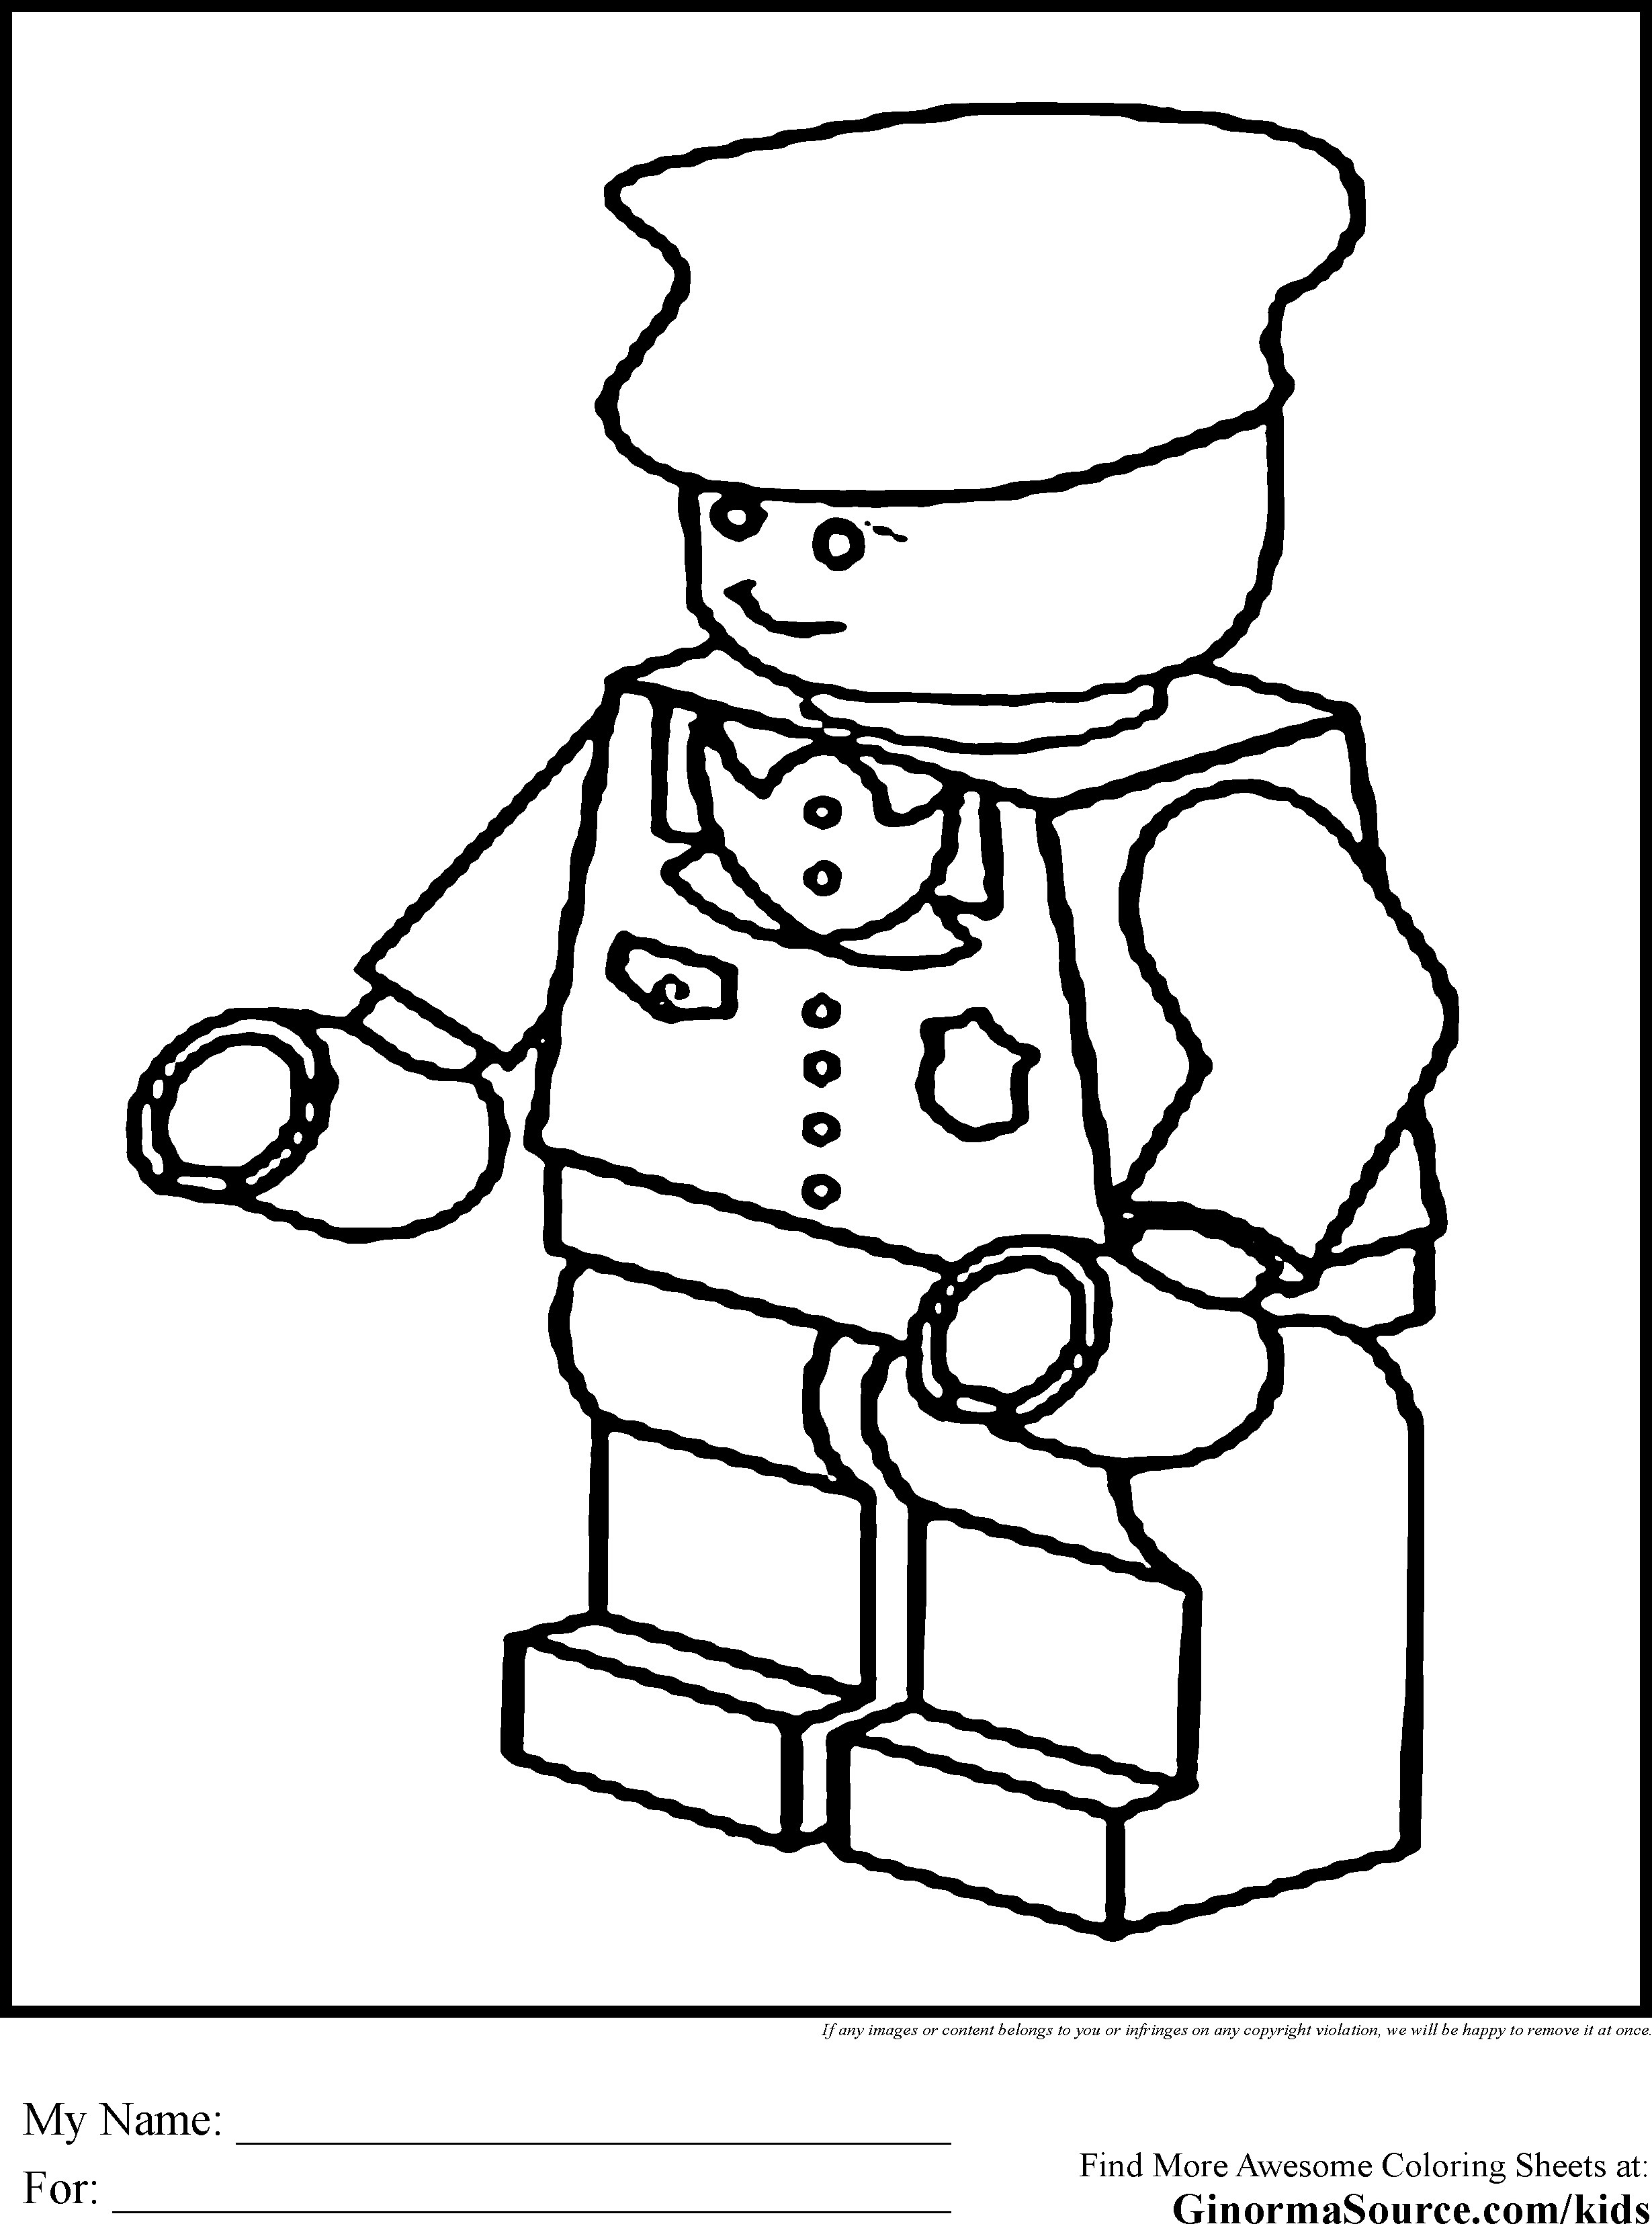 lego people coloring pages lego coloring pages wecoloringpage lego coloring people pages